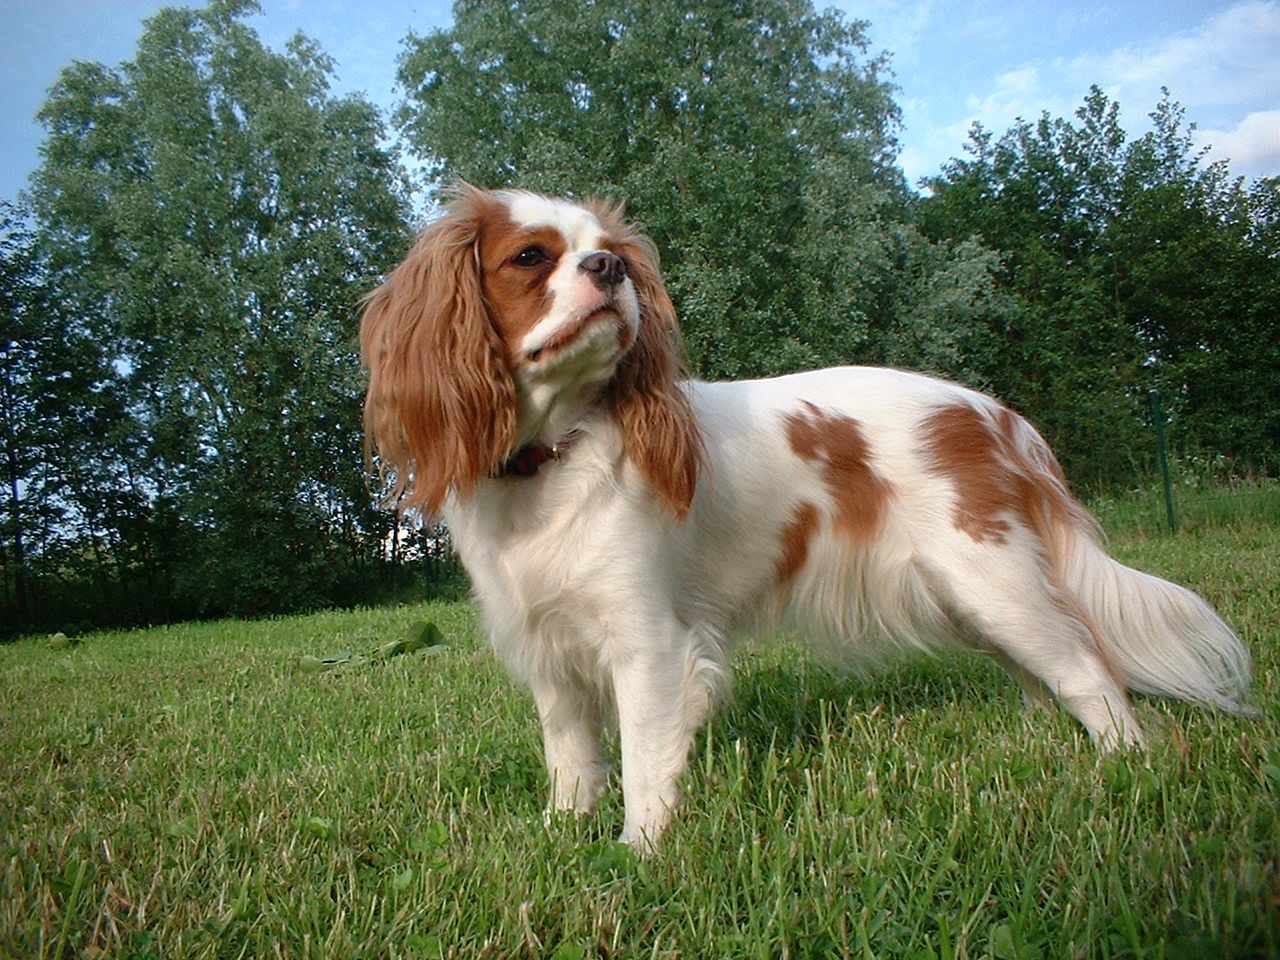 king charles spaniel is a baby brand of spaniel type dog and is